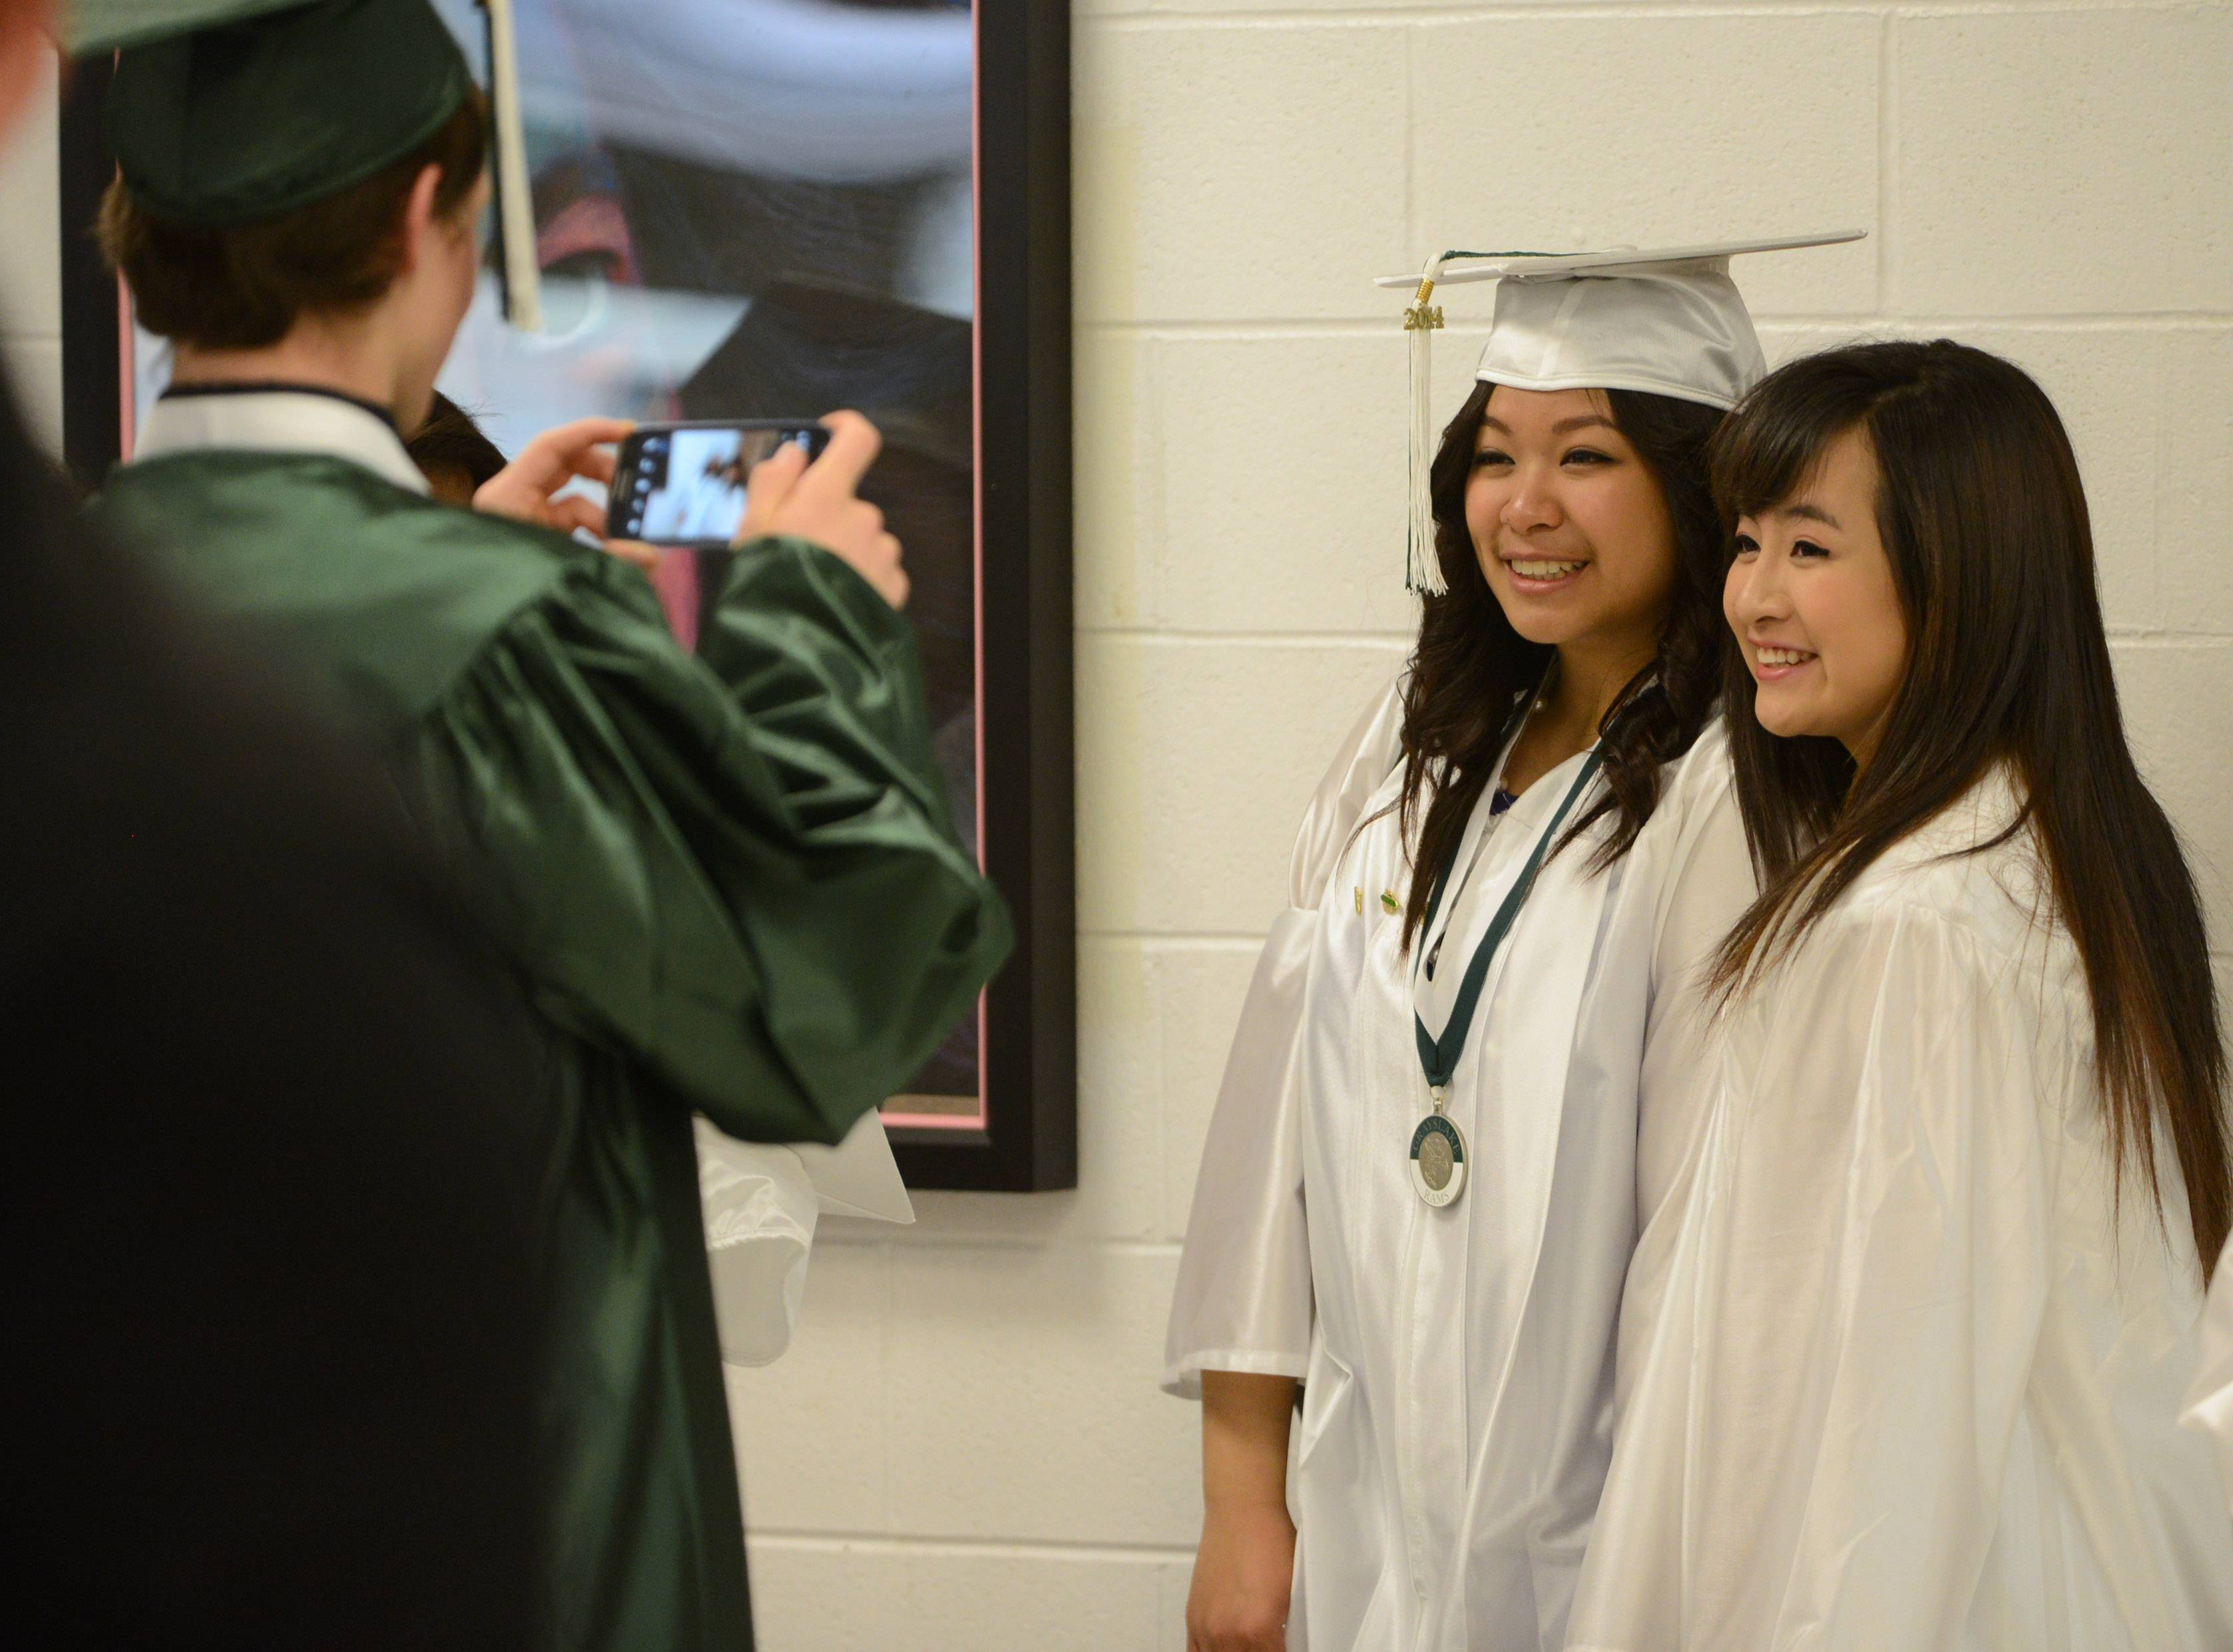 Grayslake Central's Evan Riley, left, takes a photo of Leanne Jamora, center, and Giahan Phan Sunday at the school's graduation ceremony.